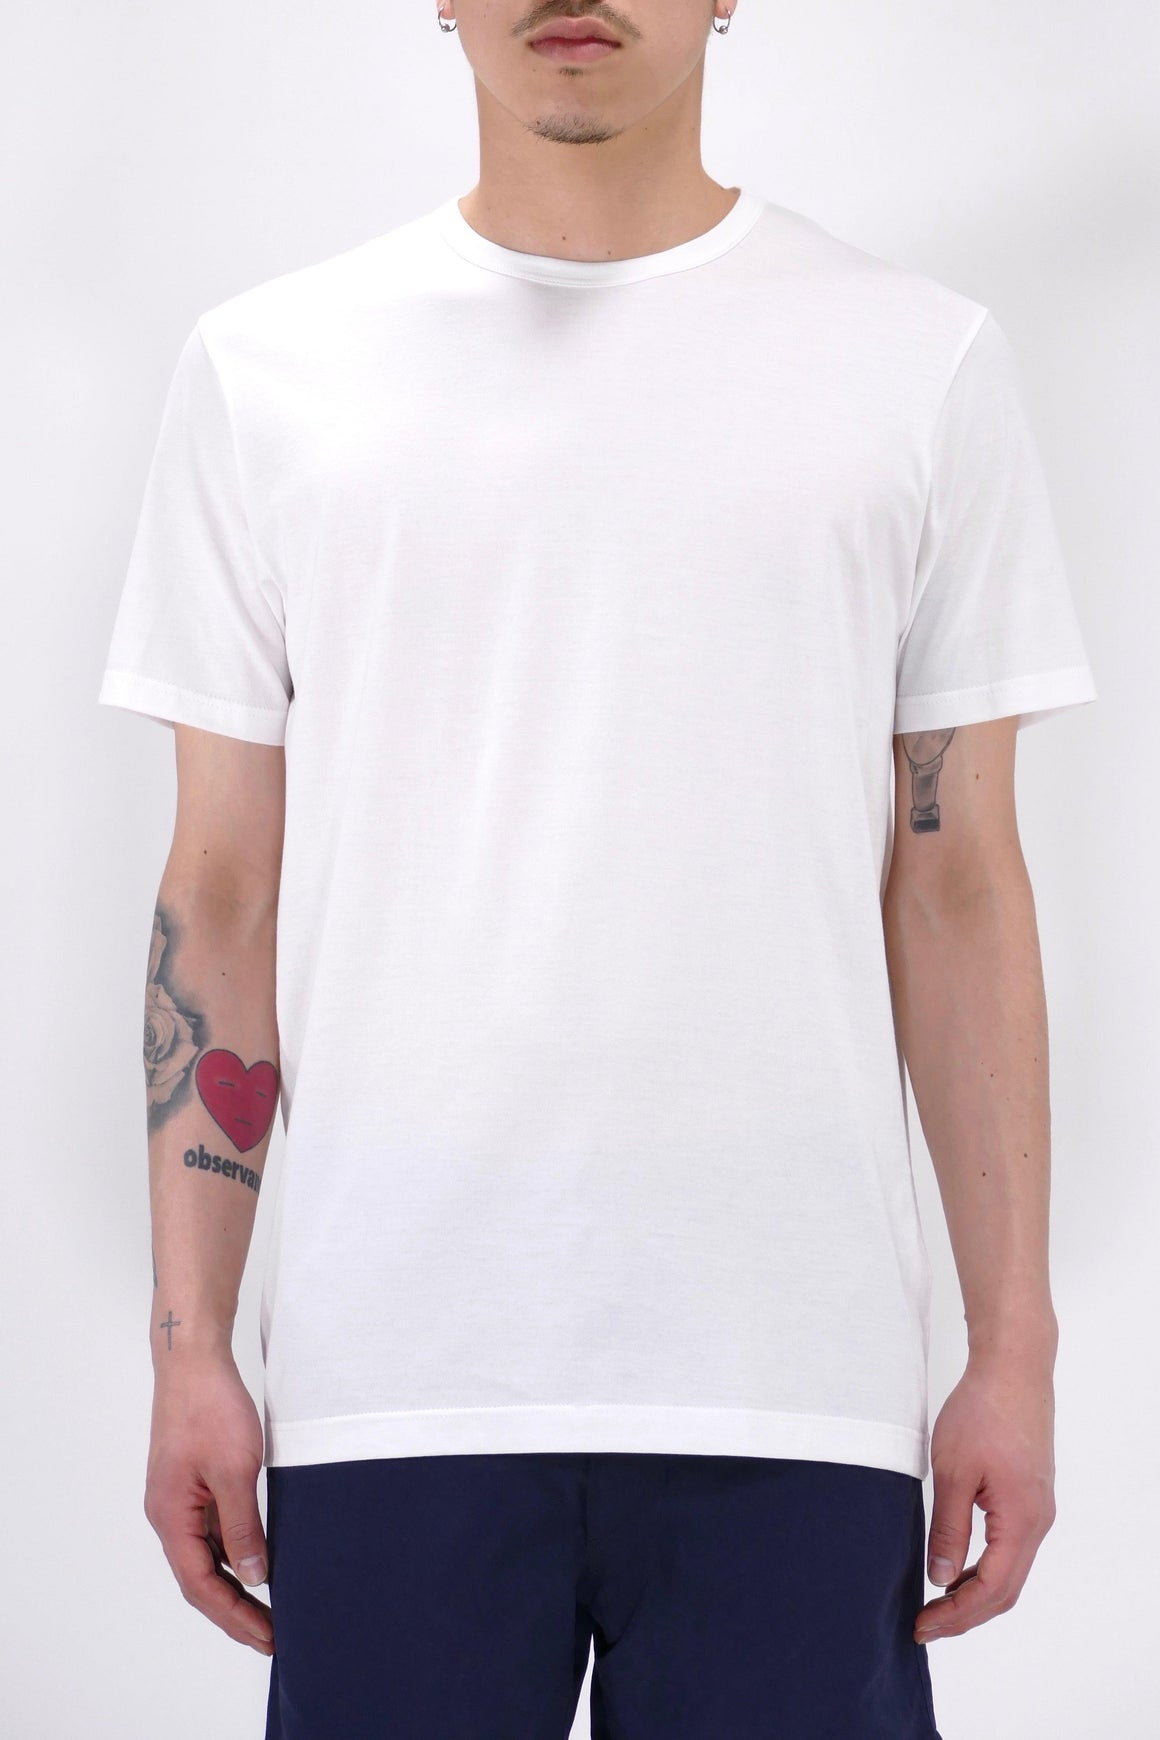 Sunspel S/S Crew Neck White T-Shirt